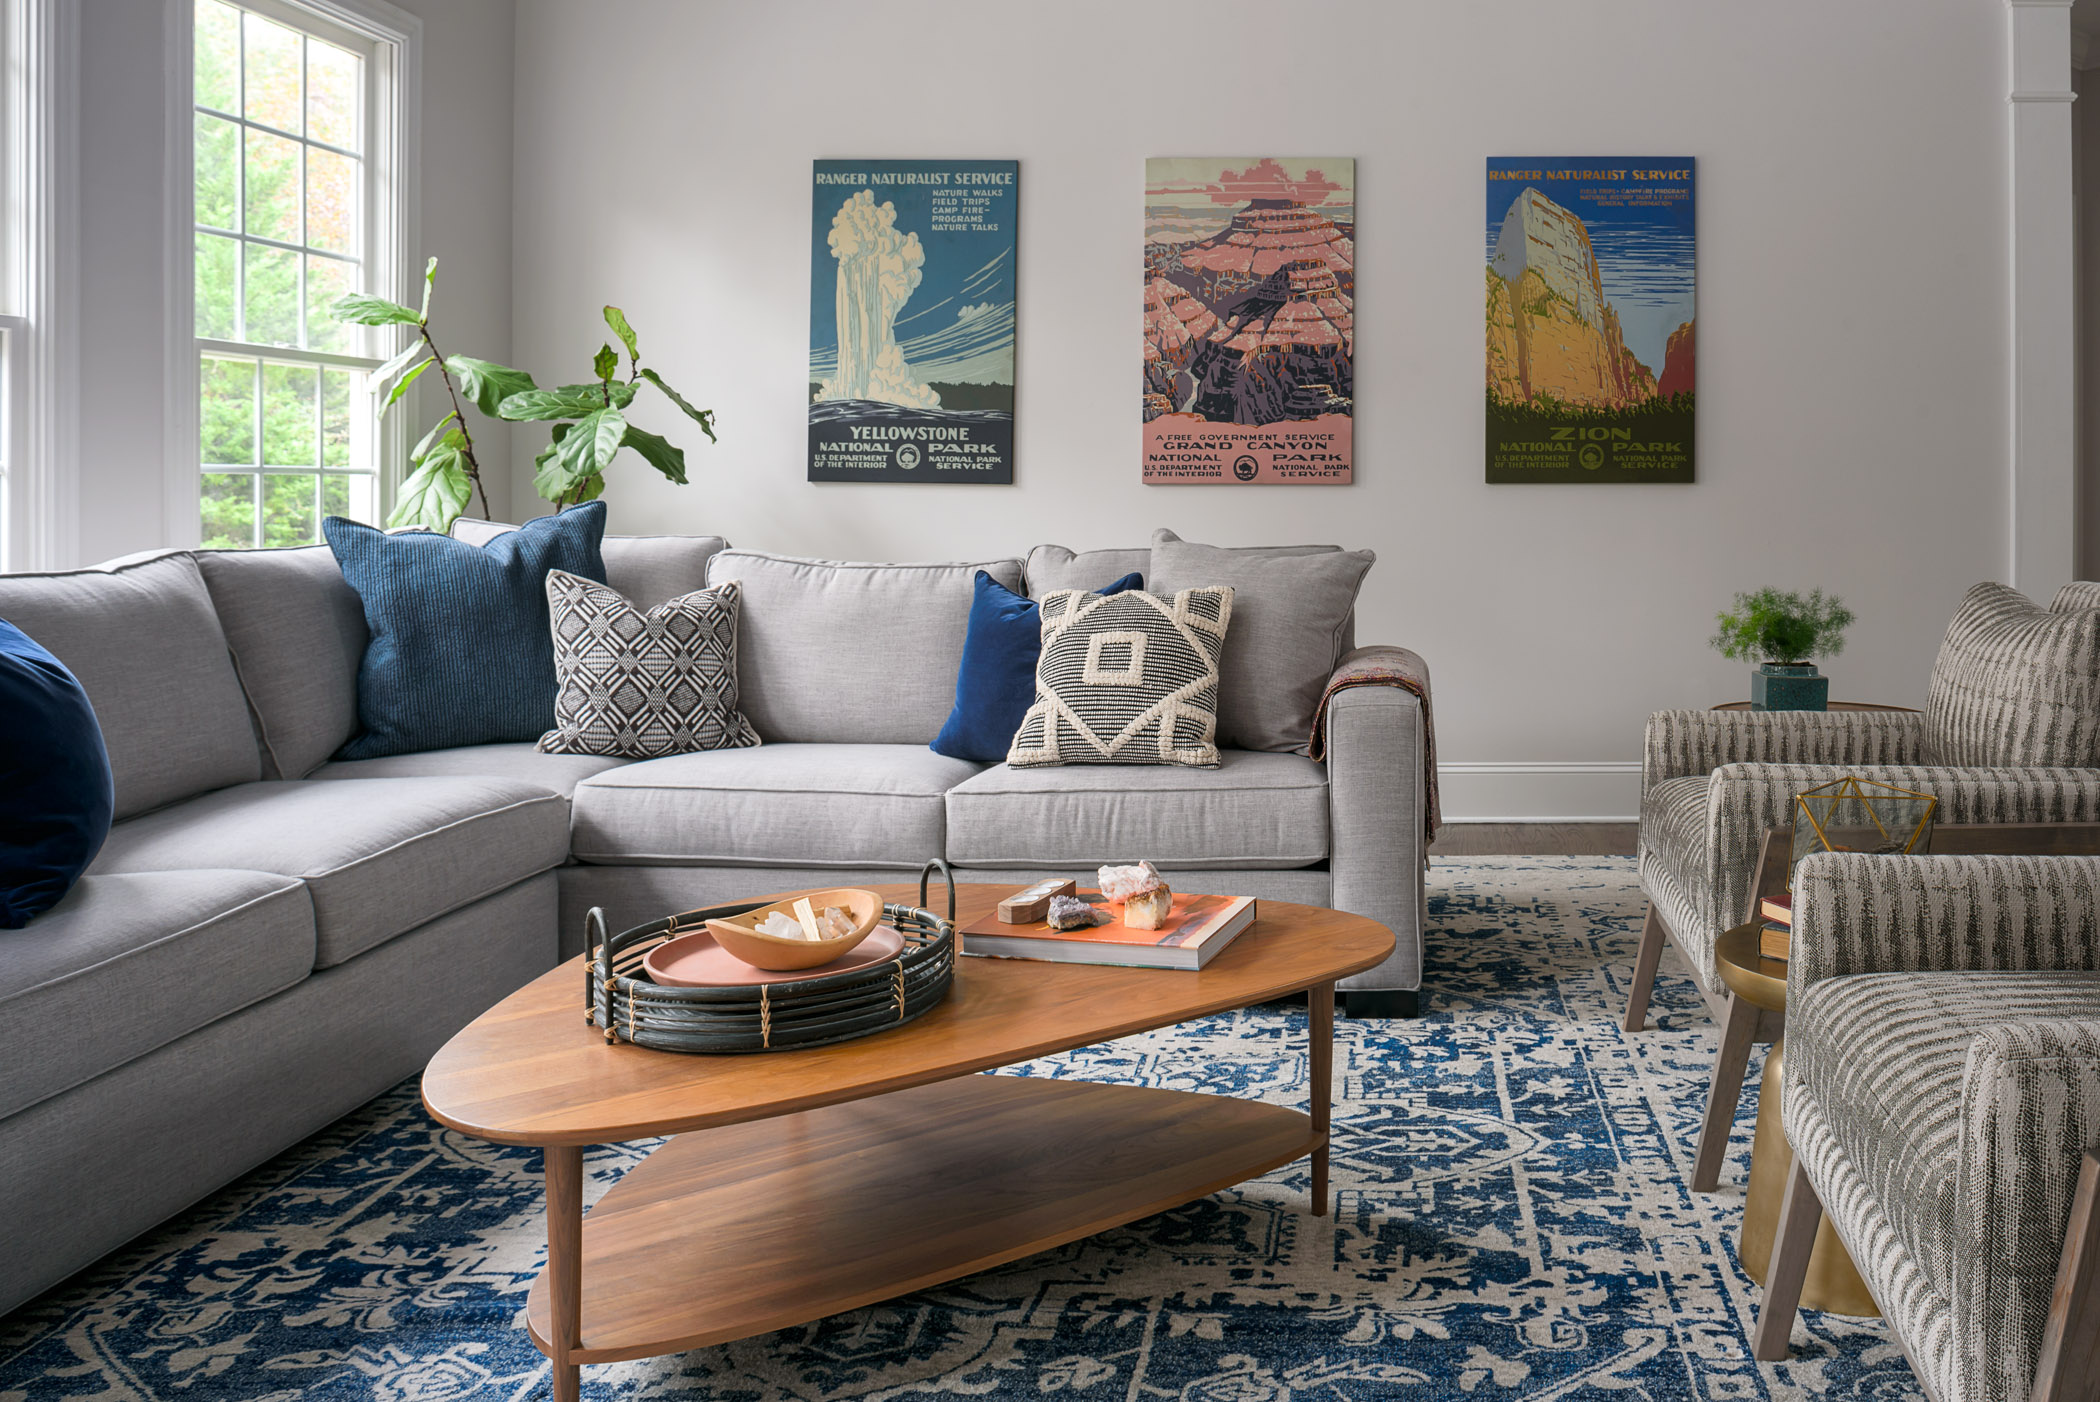 Light gray walls maximize the abundant natural light in every space of the house. We livened up a neutral palette with pops of bright blue, earth tones, and some playful patterned textiles.